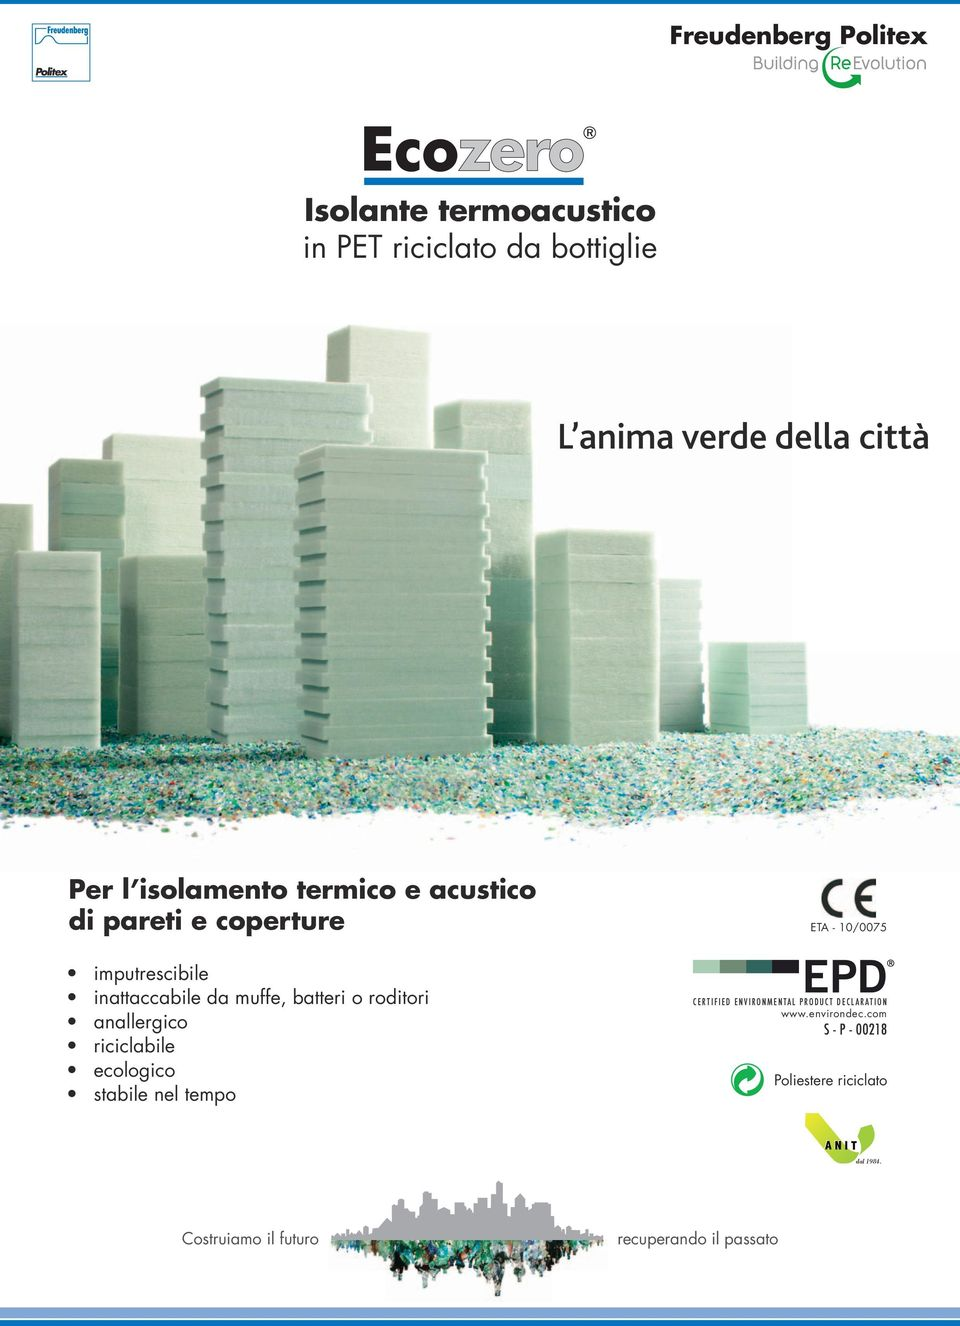 riciclabile ecologico stabile nel tempo ETA - /0075 CERTIFIED ENVIRONMENTAL PRODUCT DECLARATION